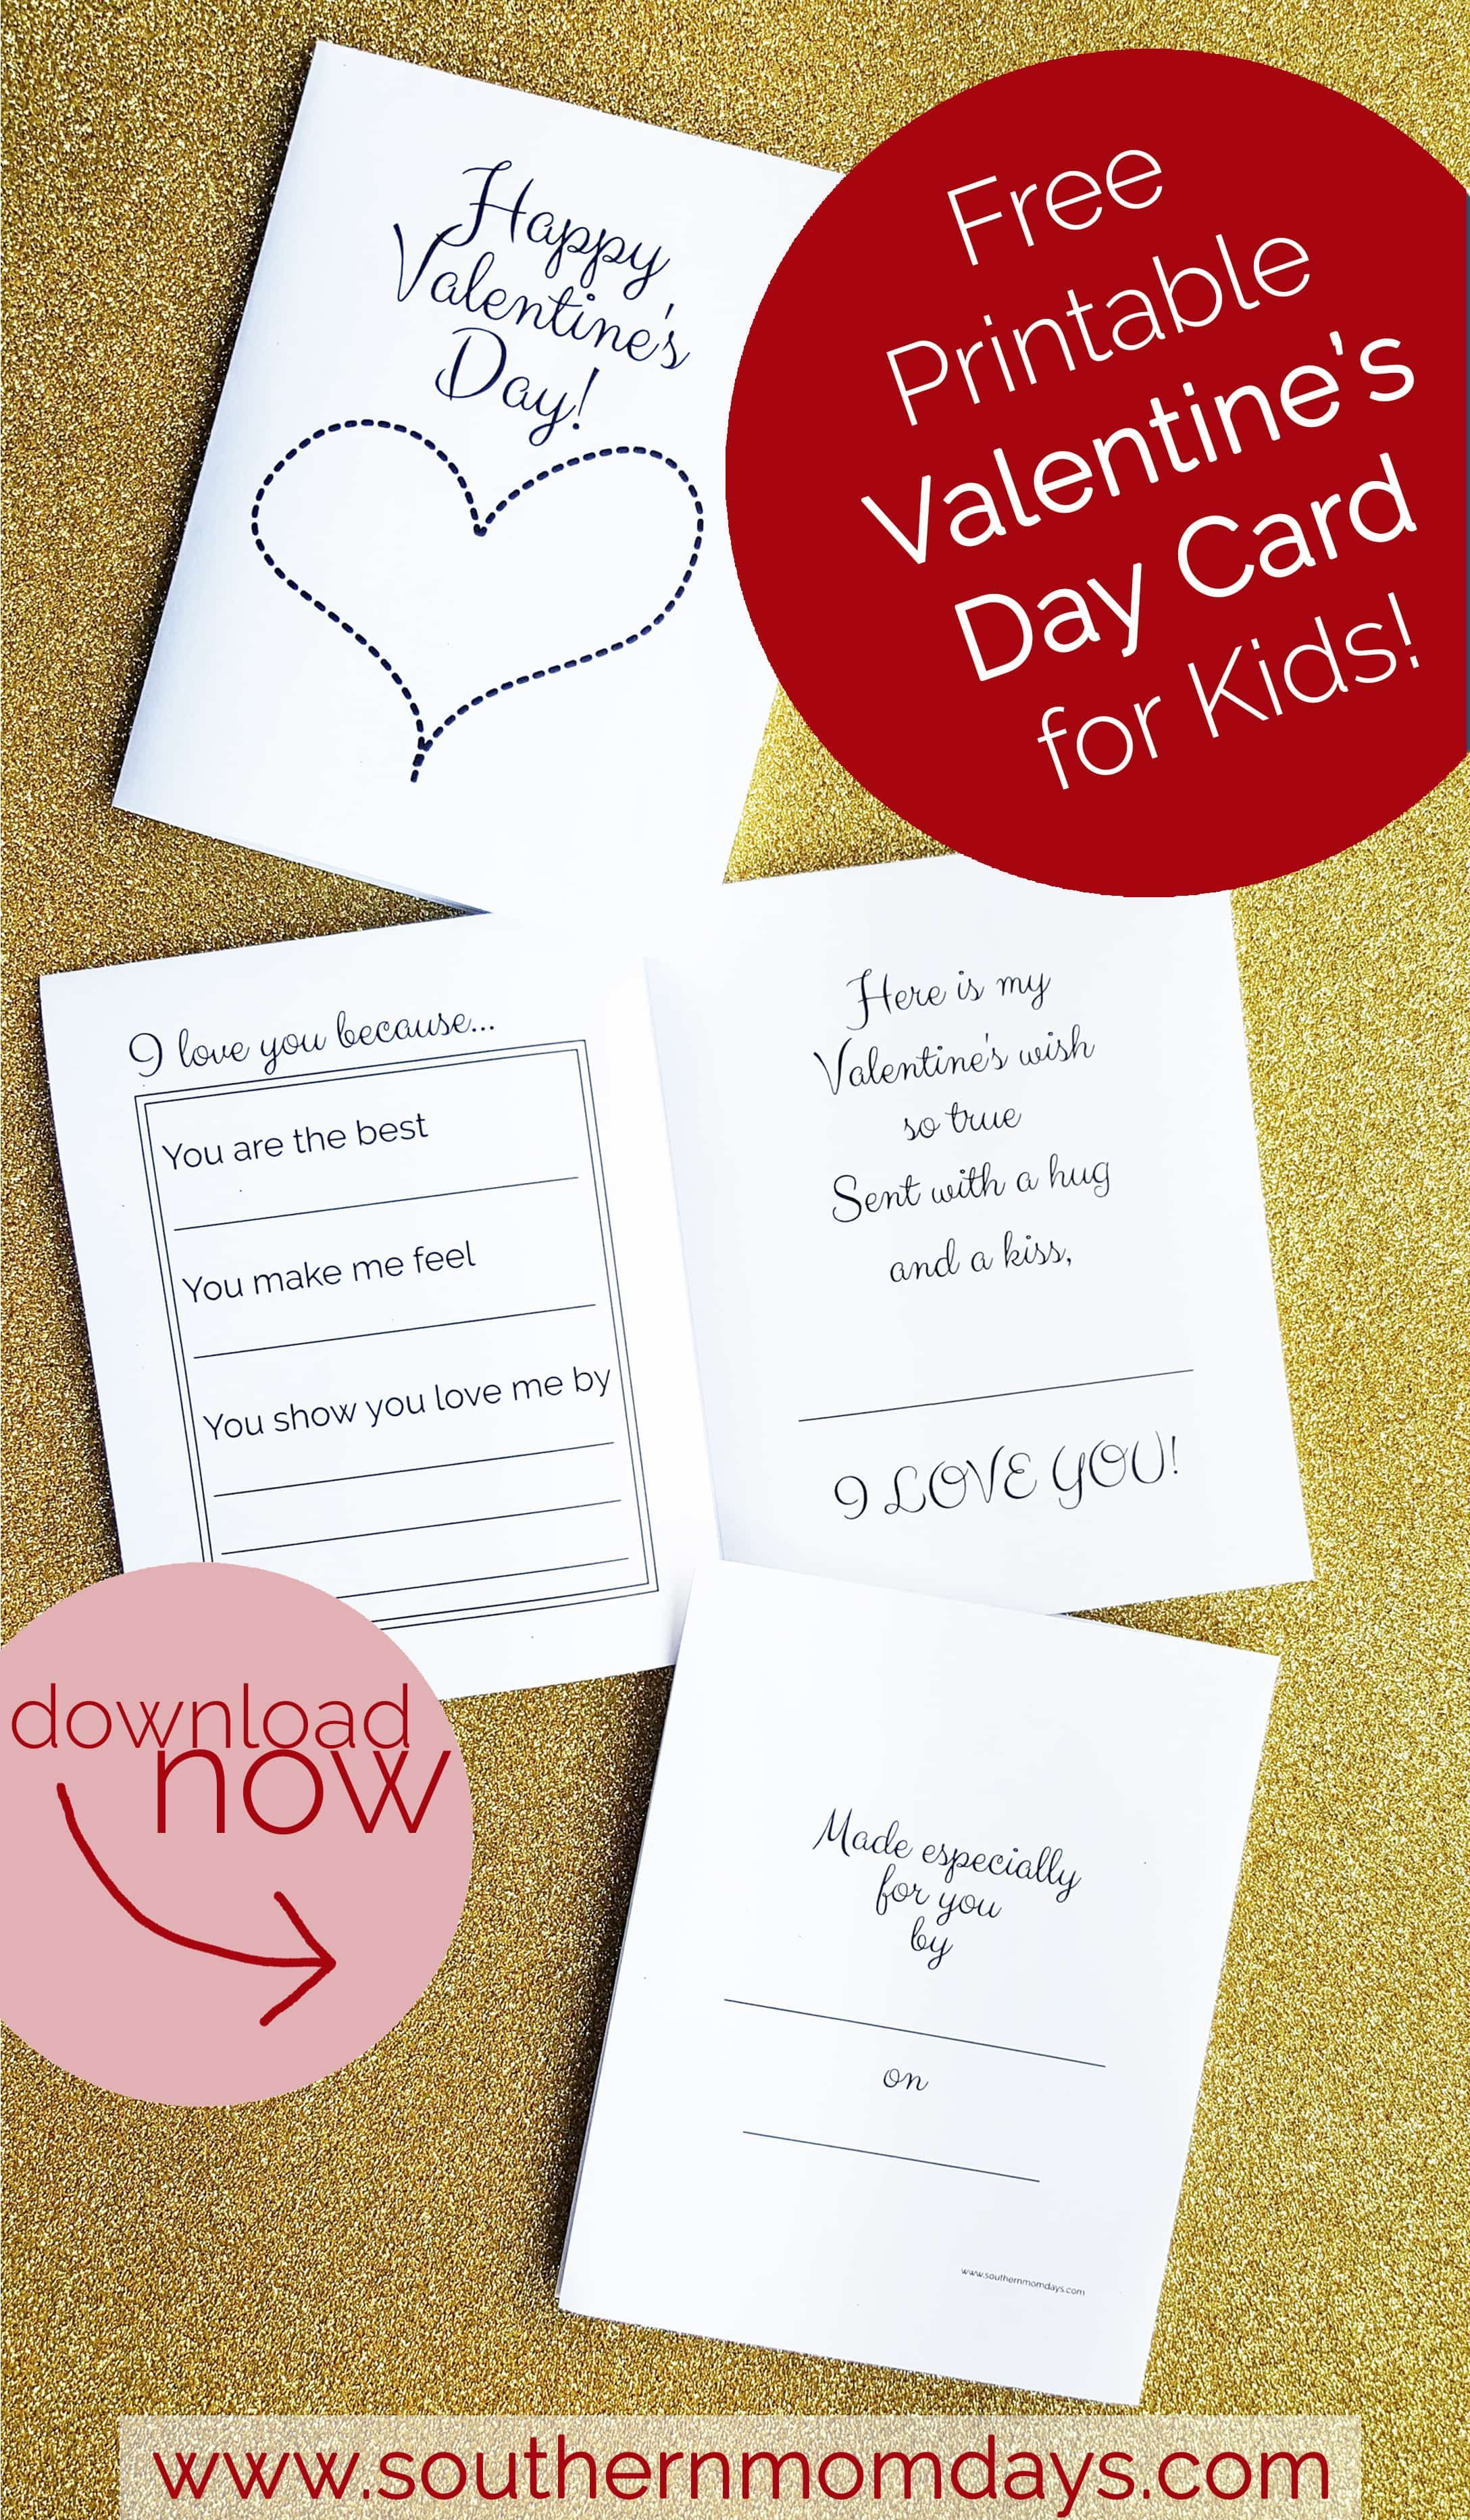 Free Printable: Valentine's Day Card For Kids   Valentine's Day - Free Printable Valentines Day Cards For Parents